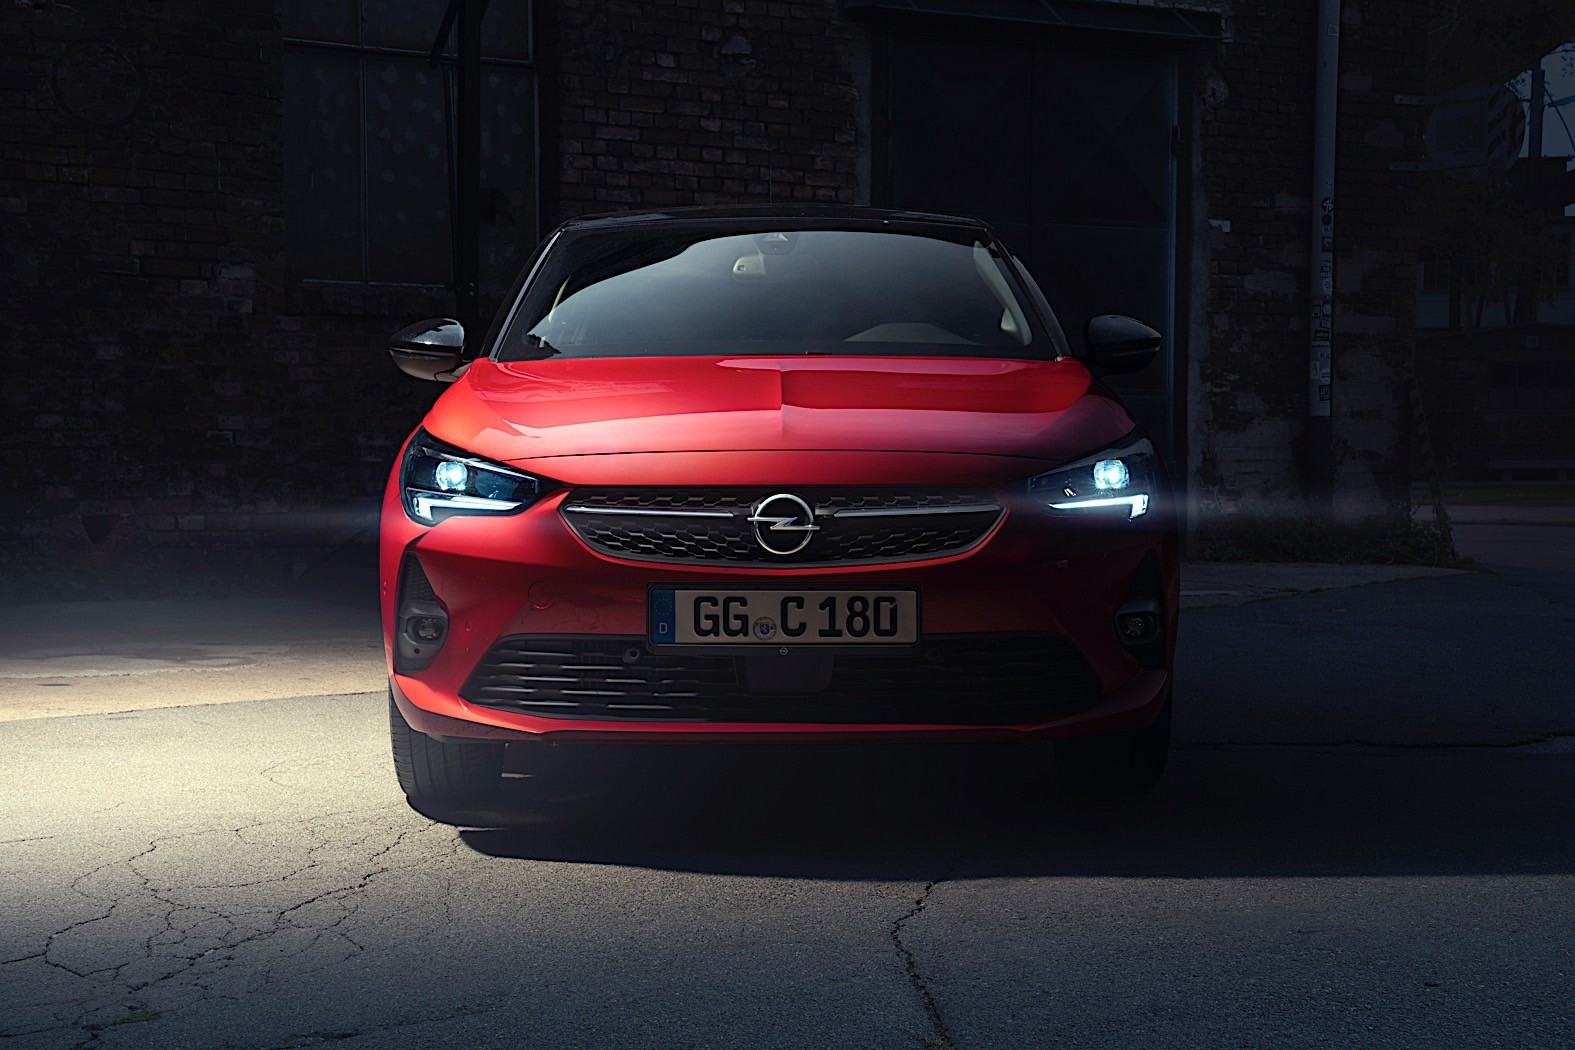 2019 - [Opel] Corsa F [P2JO] - Page 19 2020-opel-corsa-gs-line-revealed-as-not-exactly-gsi_7